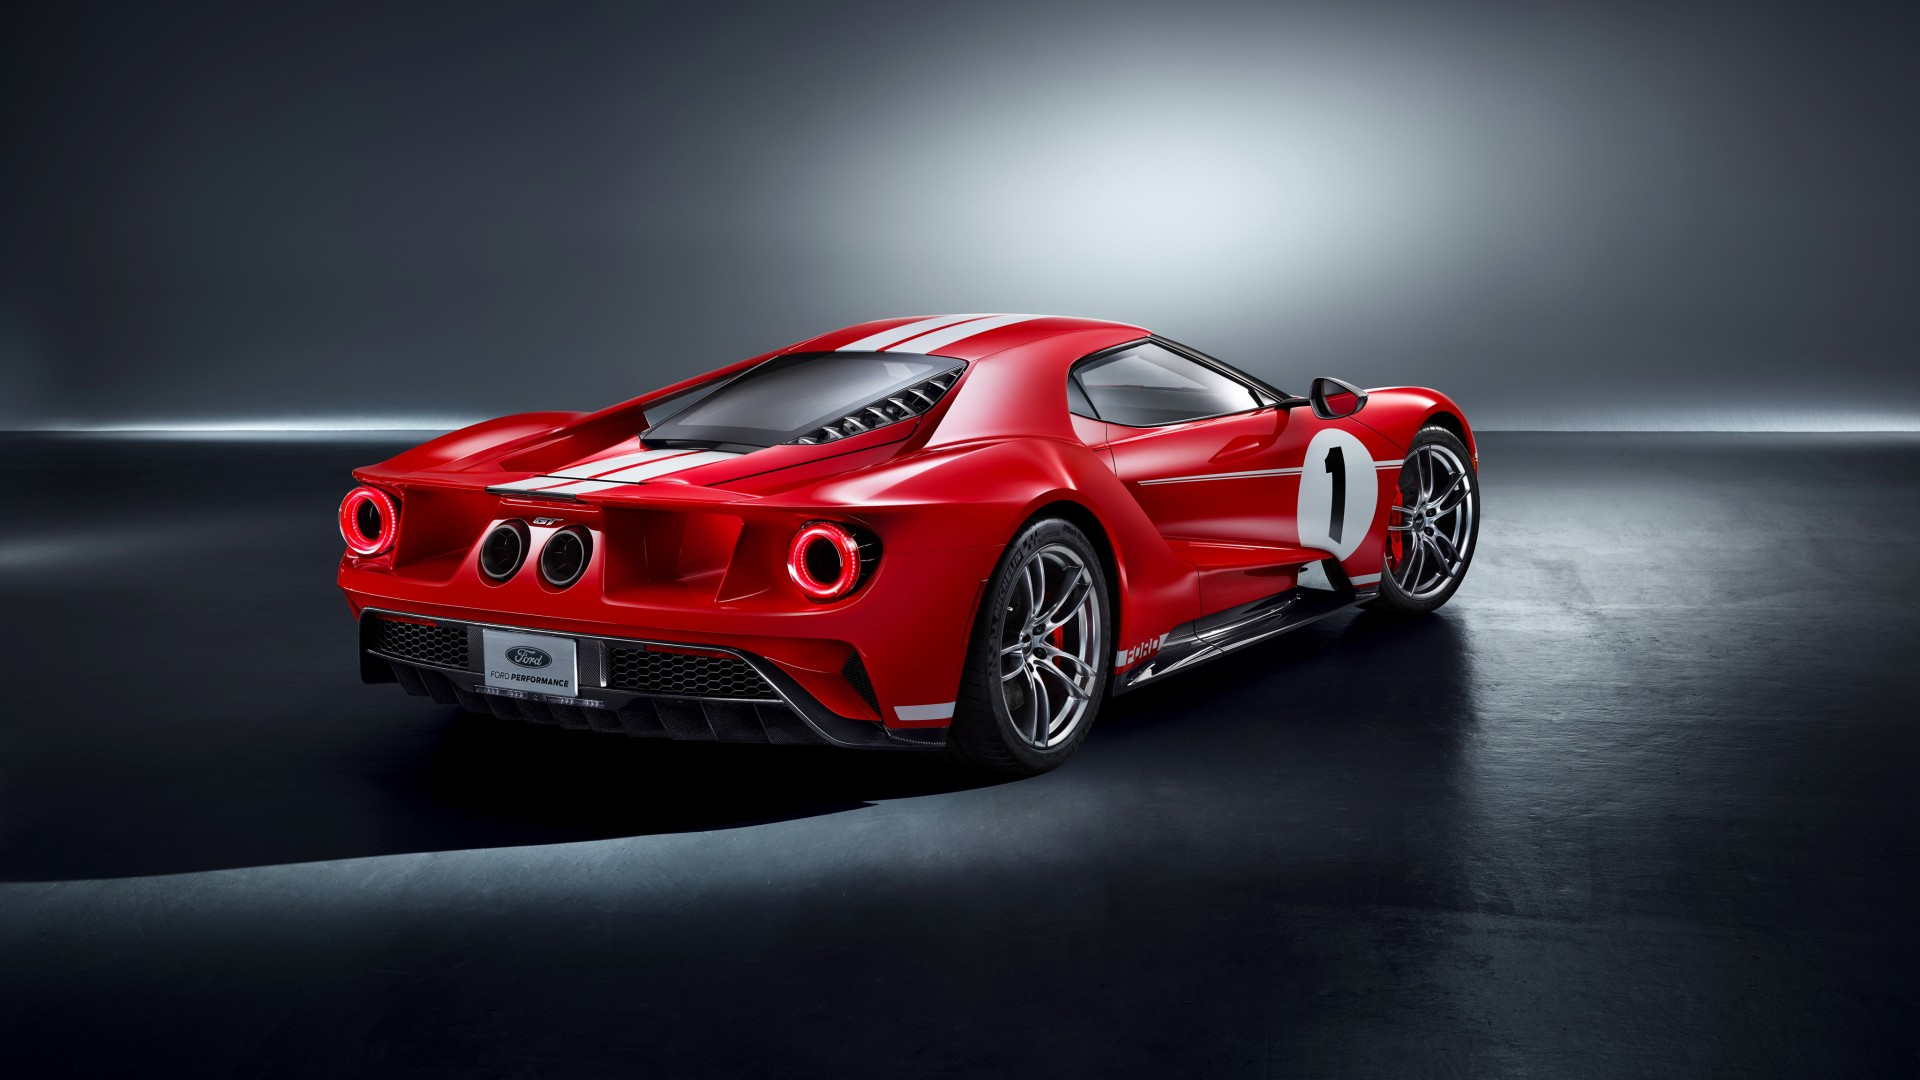 Ford Gt Car Wallpaper Hd 2018 Ford Gt 67 Heritage Edition 4k 2 Wallpaper Hd Car